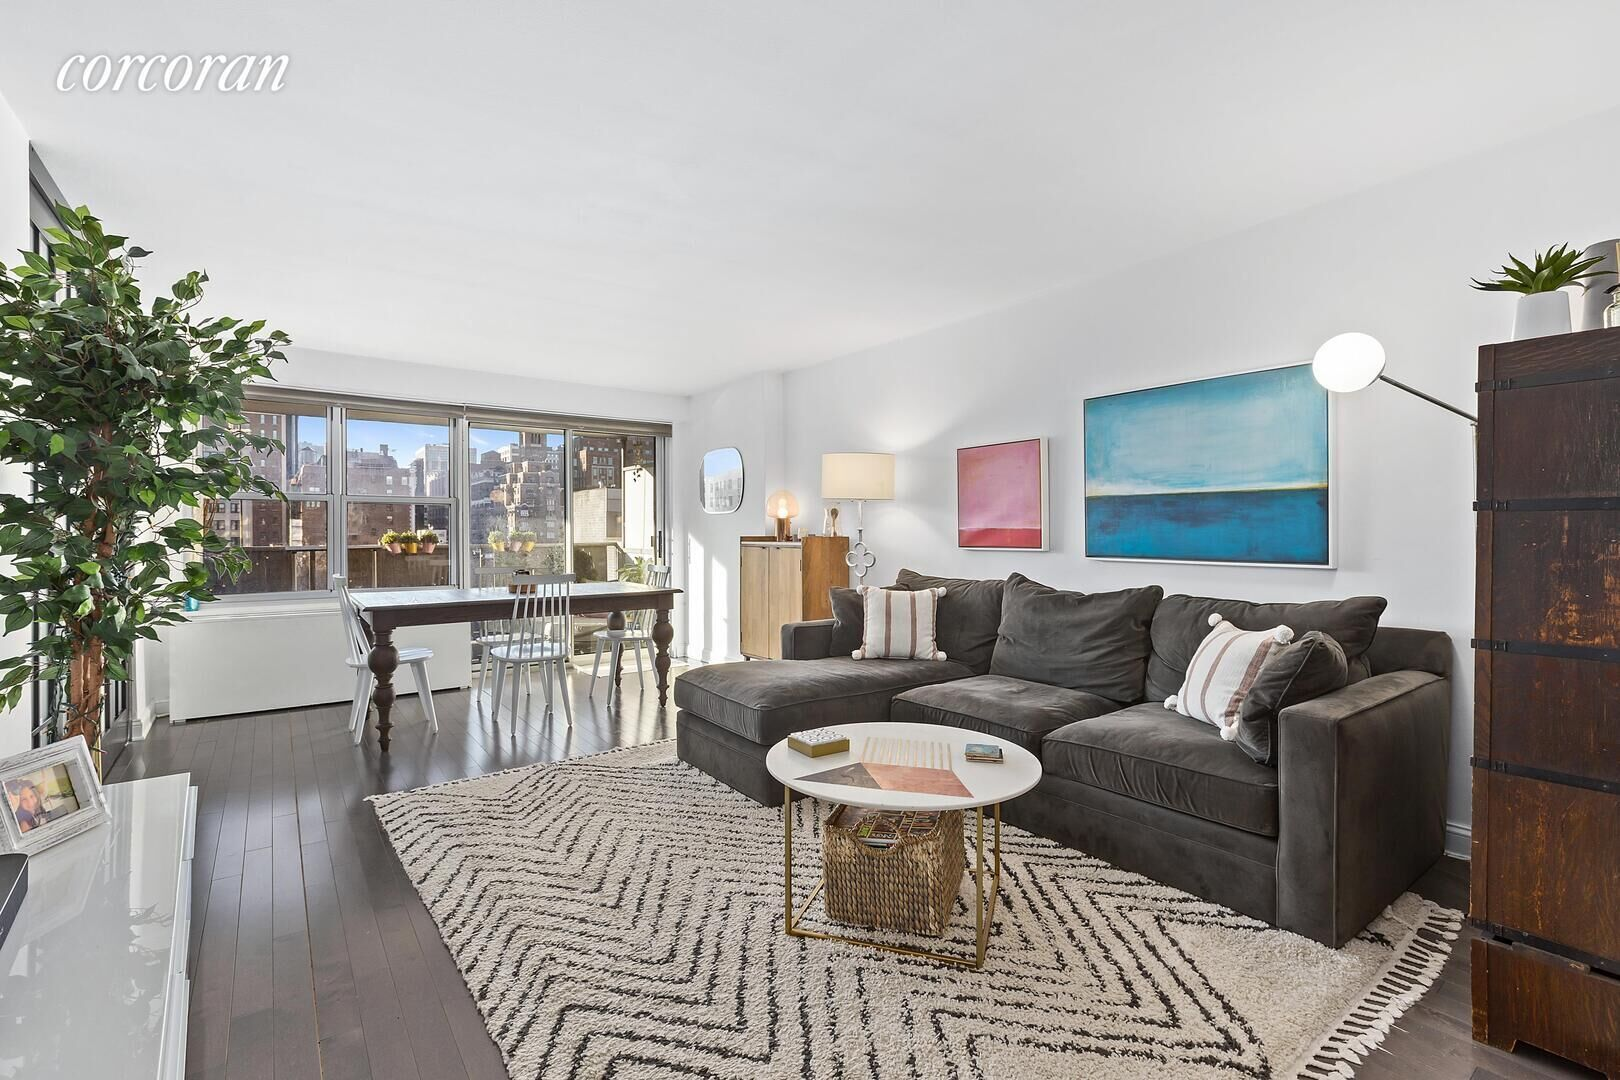 Apartment for sale at 205 Third Avenue, Apt 11K